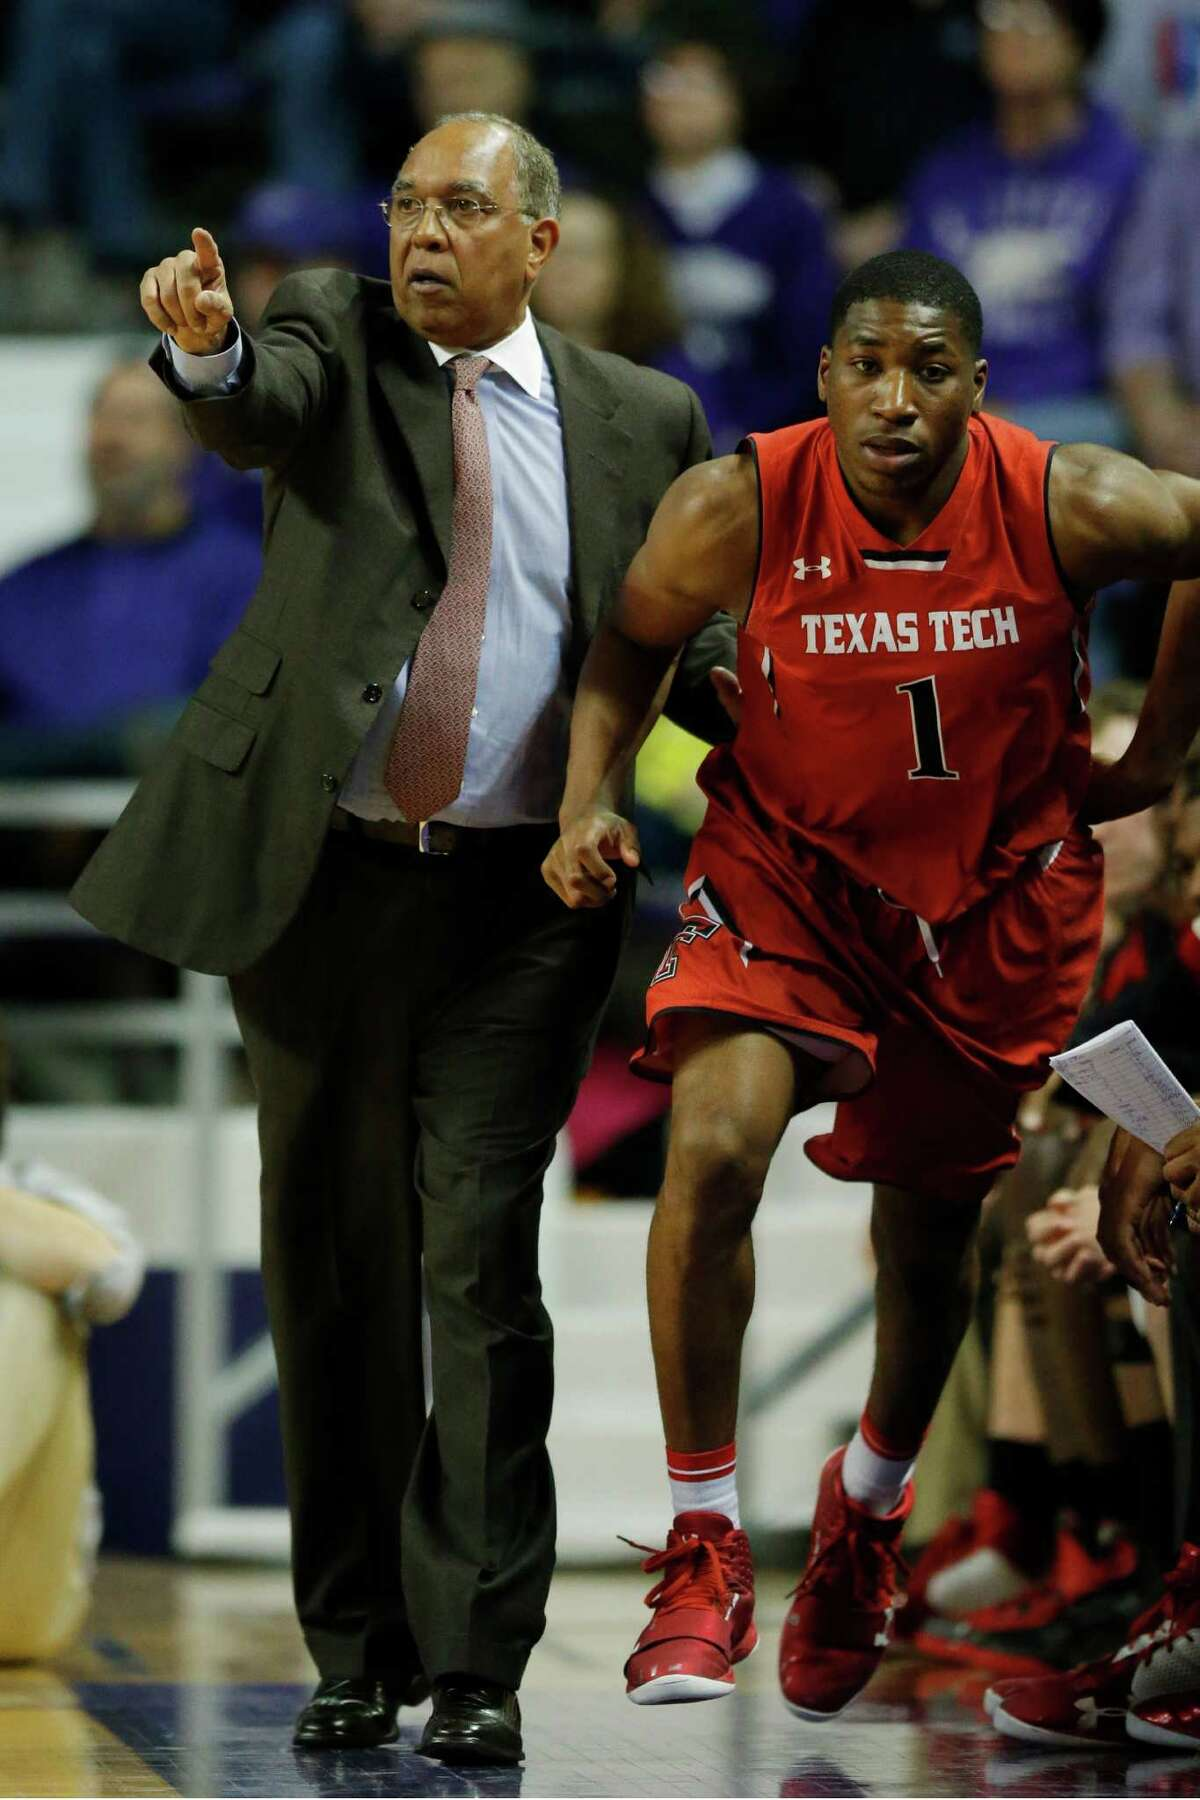 Four turnaround seasons1. Texas Tech The Red Raiders finished last year with a 13-19 record. This season, coach Tubby Smith's third with the program, they are off to an 11-1 start. Texas Tech tipped off Big 12 conference play with an 82-74 win over Texas and travel to No. 11 Iowa State on Wednesday for another big test.